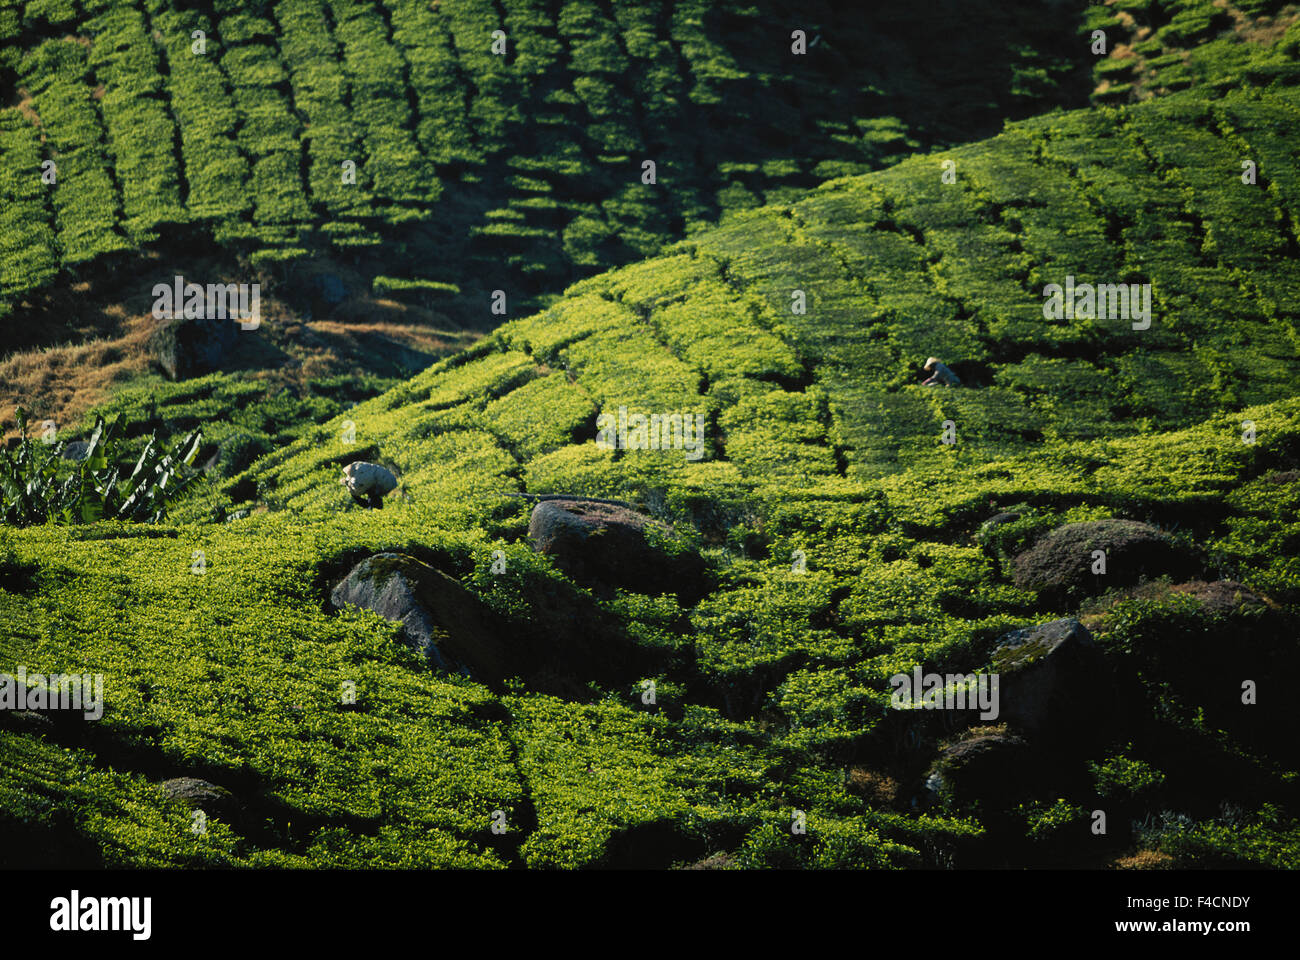 Malaysia, Cameron highlands, People working in tea fields. (Large format sizes available) - Stock Image